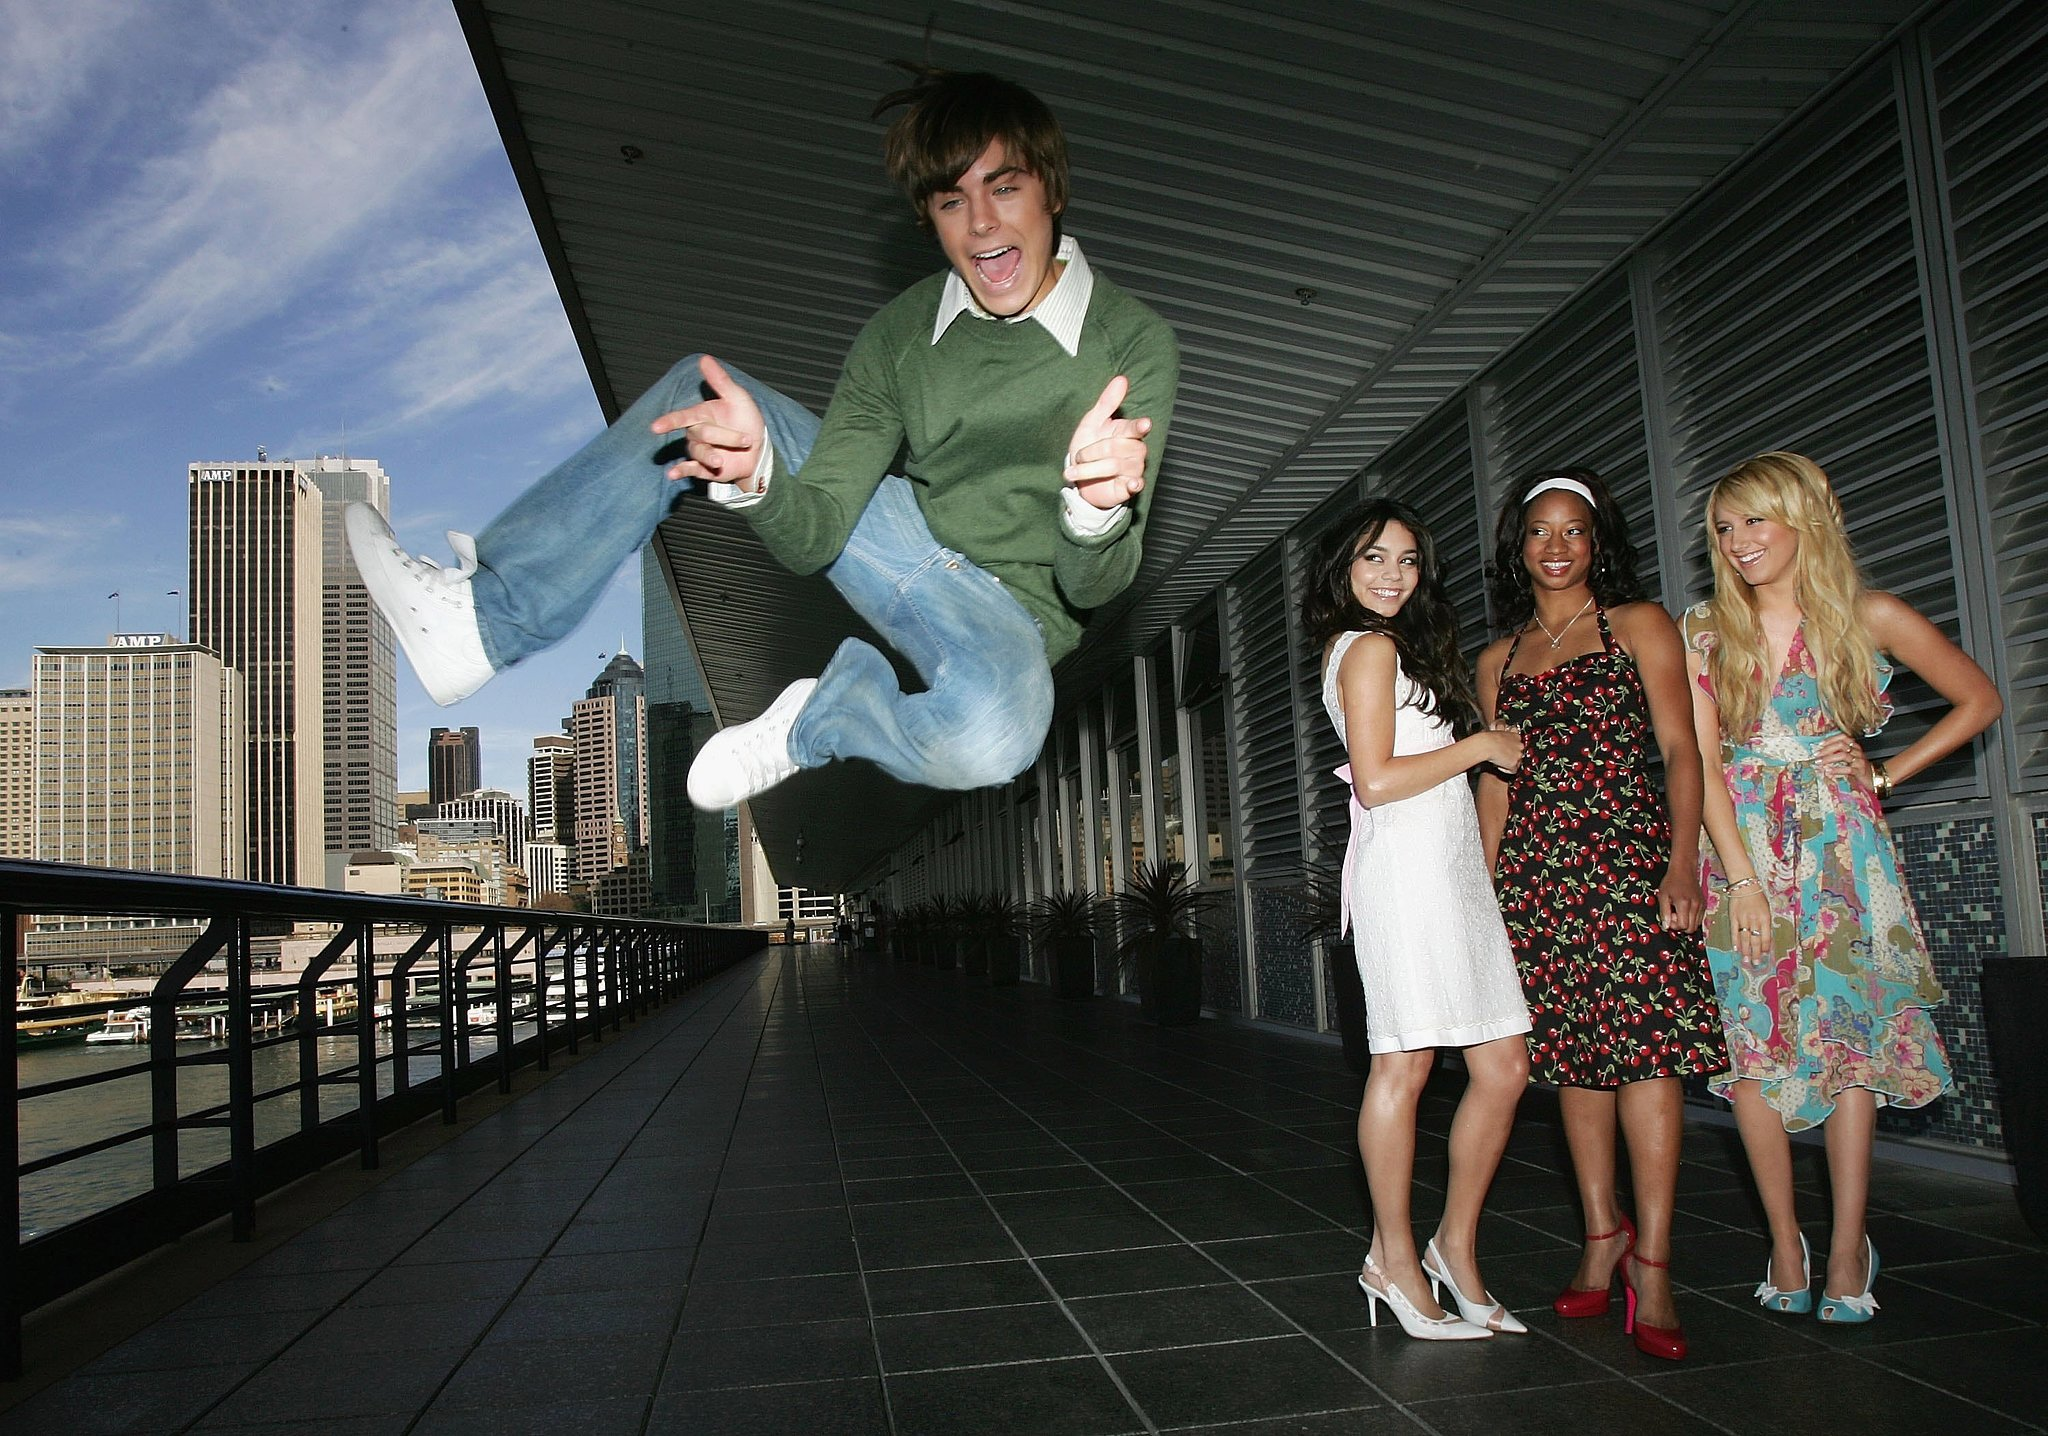 He was kind of the same in High School Musical in 2006.